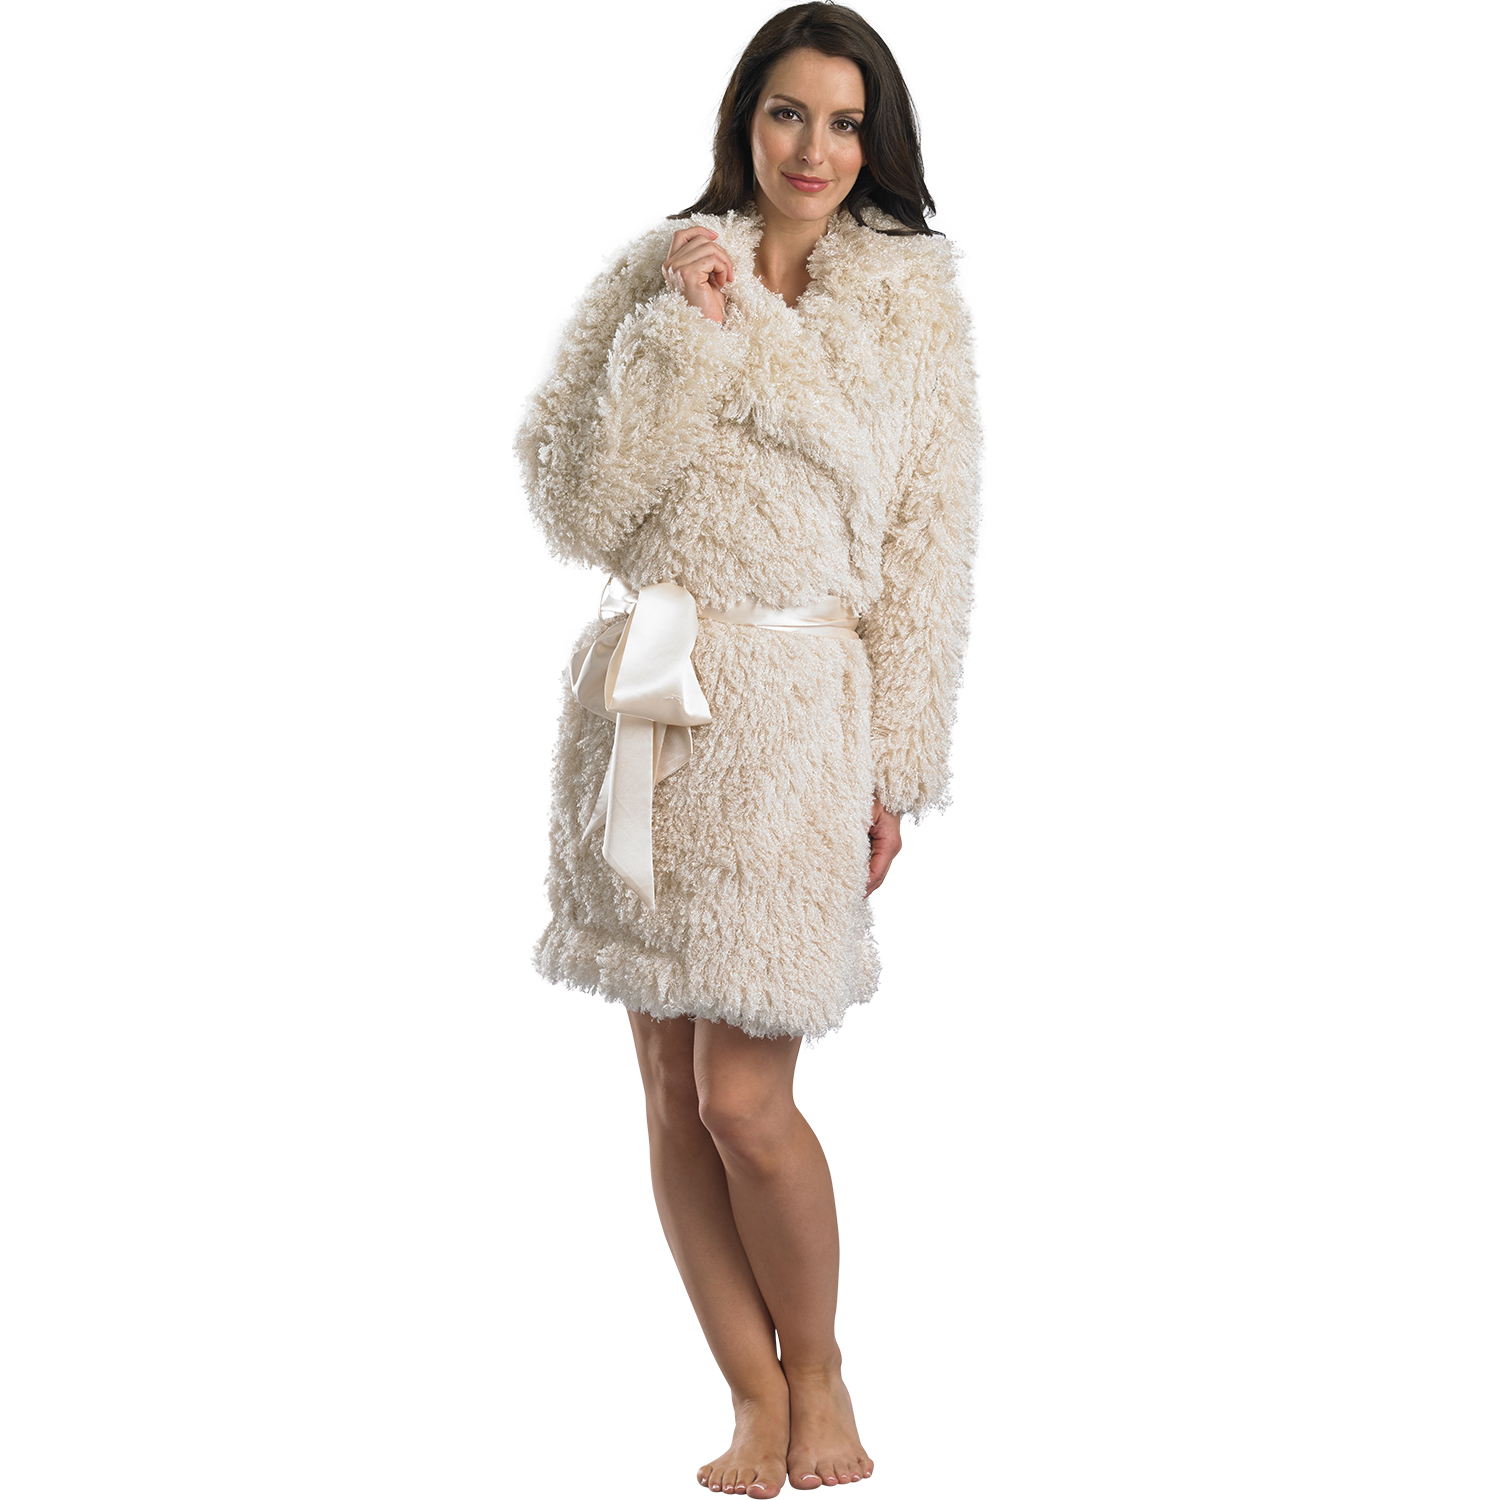 Amazing Fluffy Dressing Gowns Ideas - Images for wedding gown ideas ...